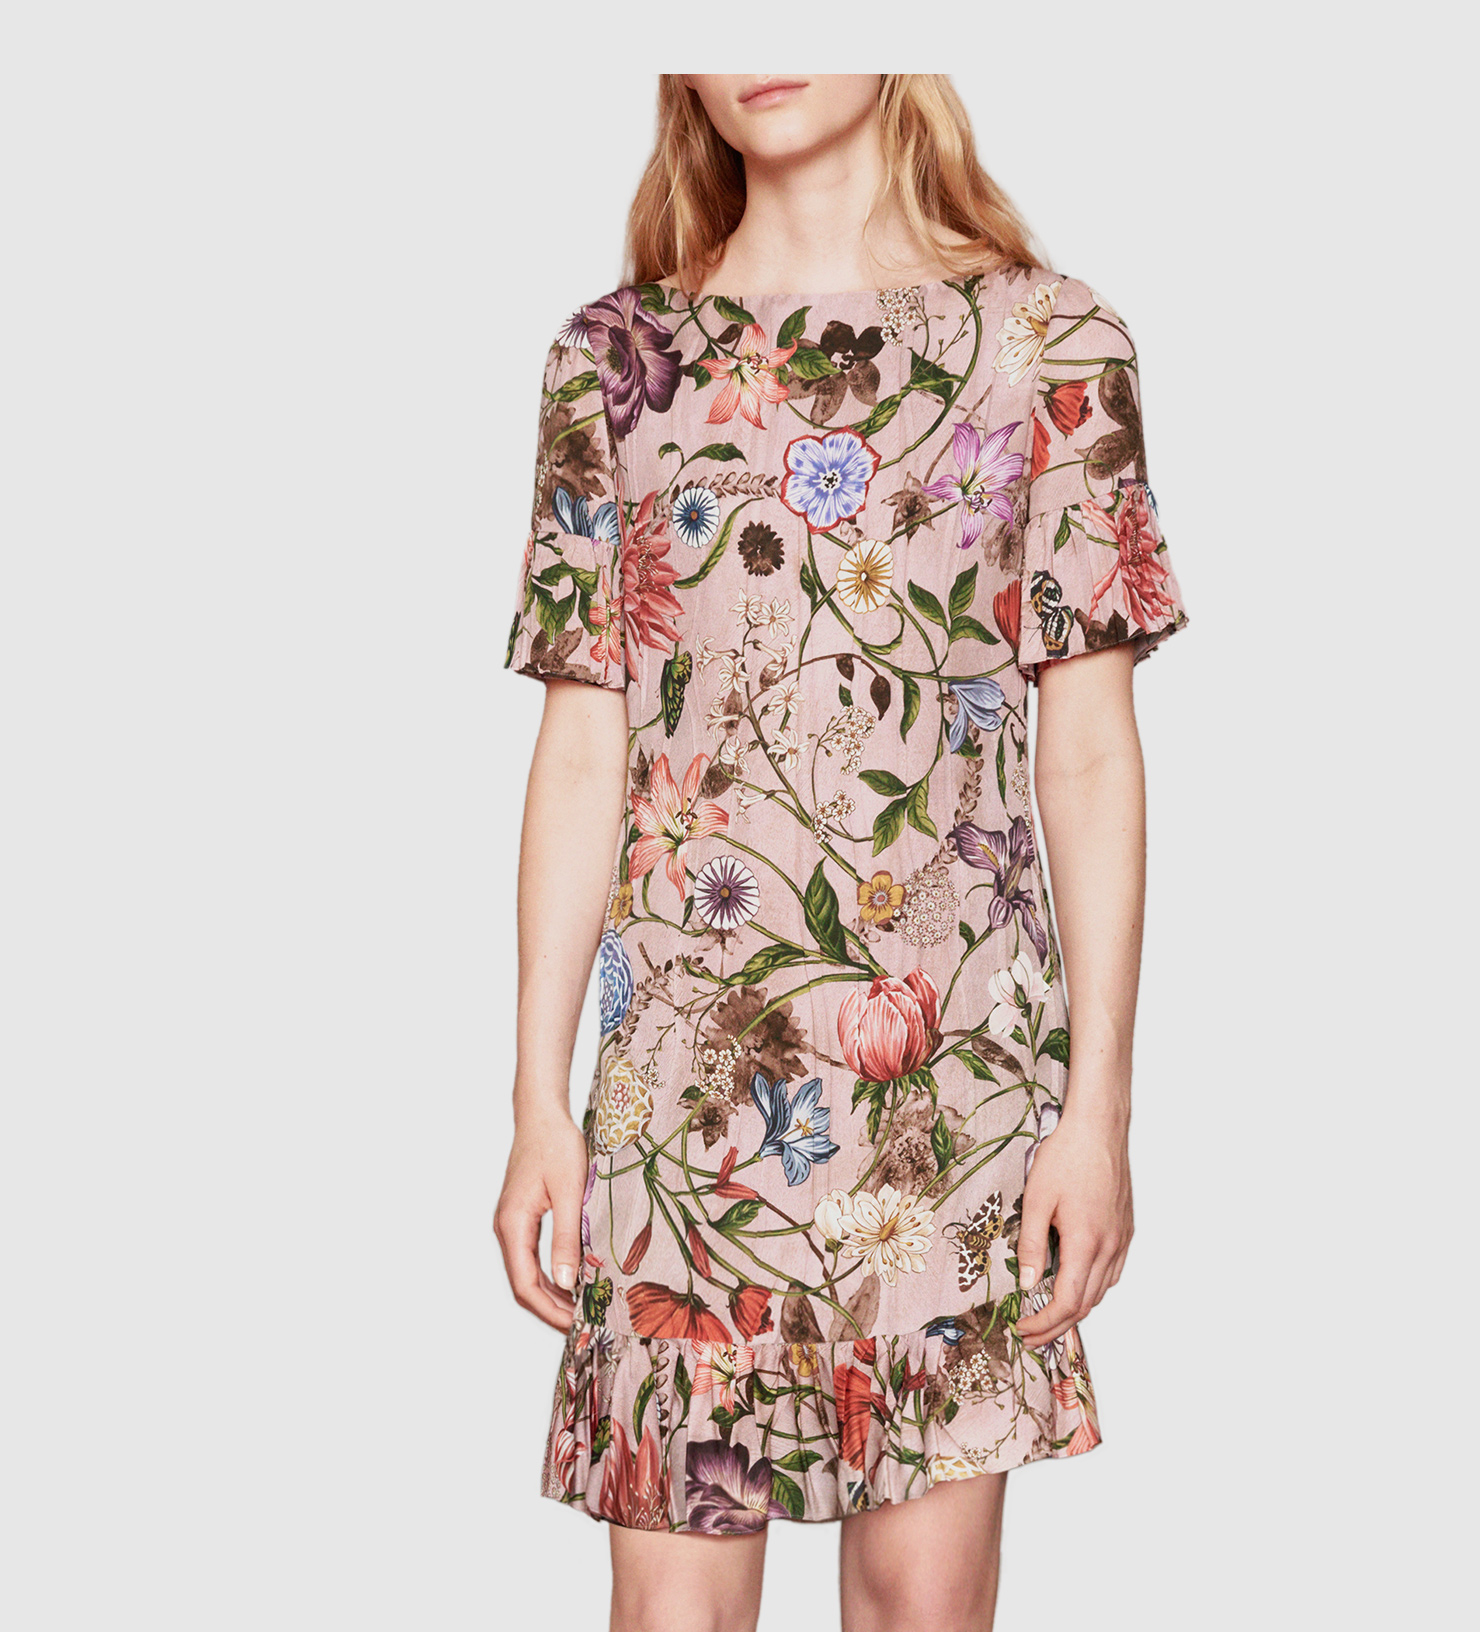 4b3e780c2 ... uk gucci garden print silk dress in pink lyst 44a06 3f0e3